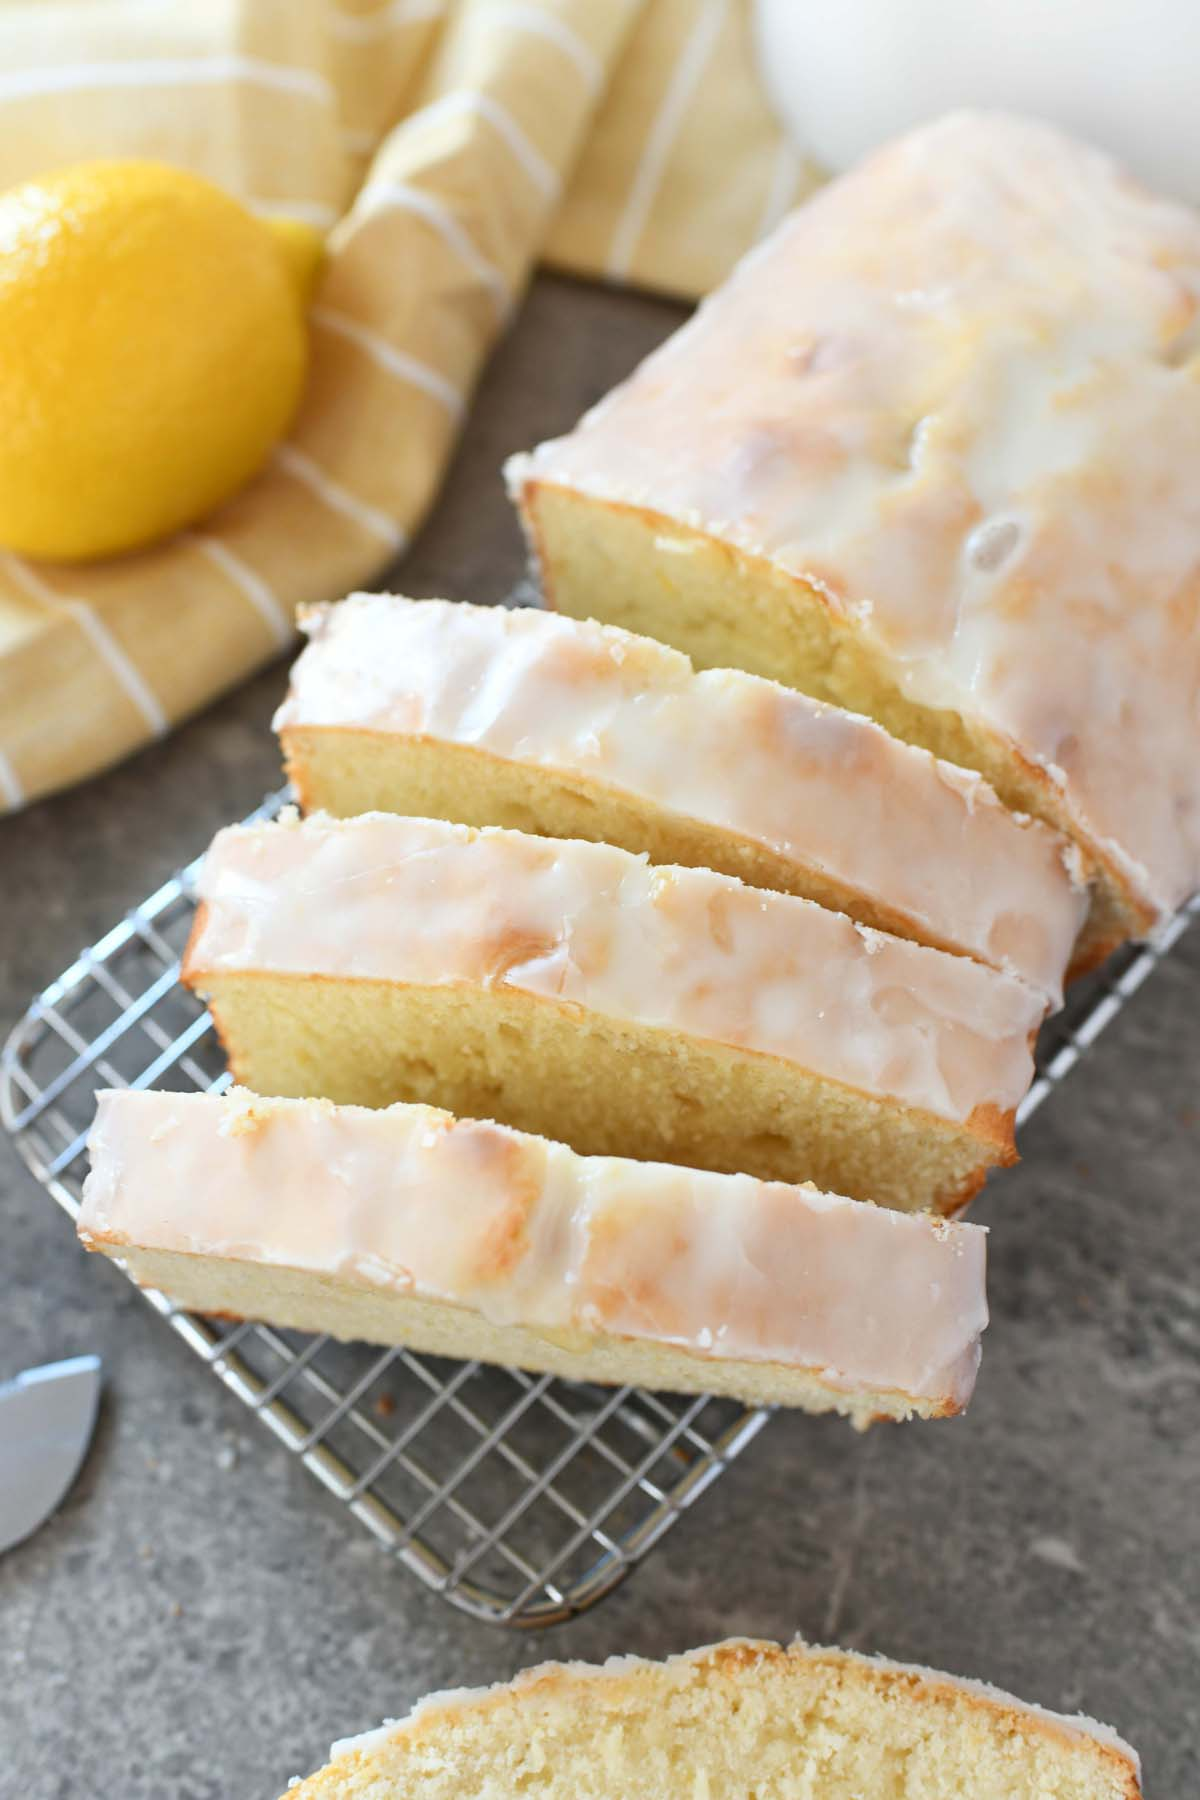 Iced Lemon Pound Cake Recipe. Sliced lemon pound cake is on a cooling rack with lemon and a yellow striped napkin nearby.